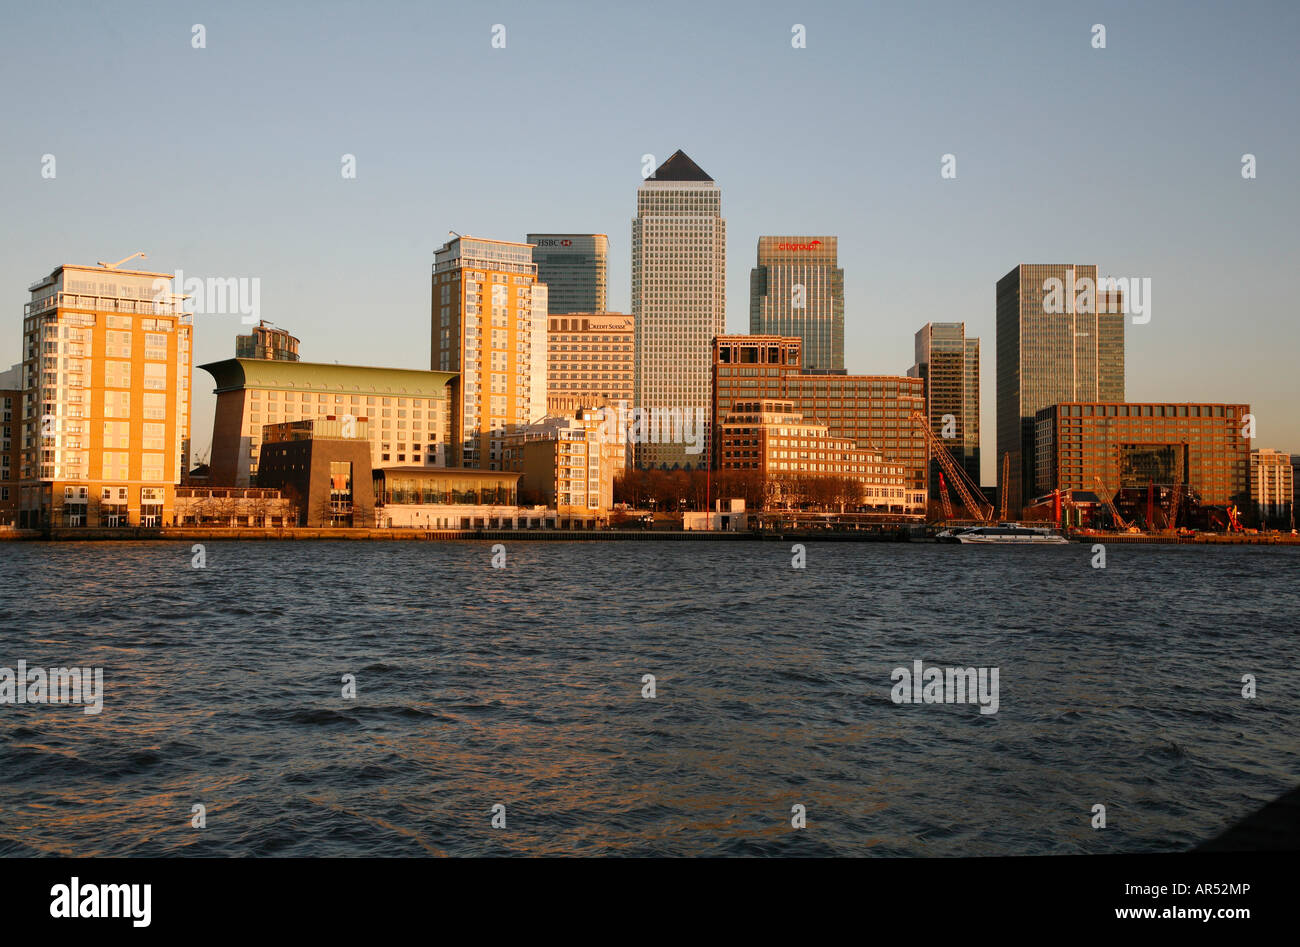 View across the River Thames in London to Canary Wharf. Taken from Rotherhithe - Stock Image